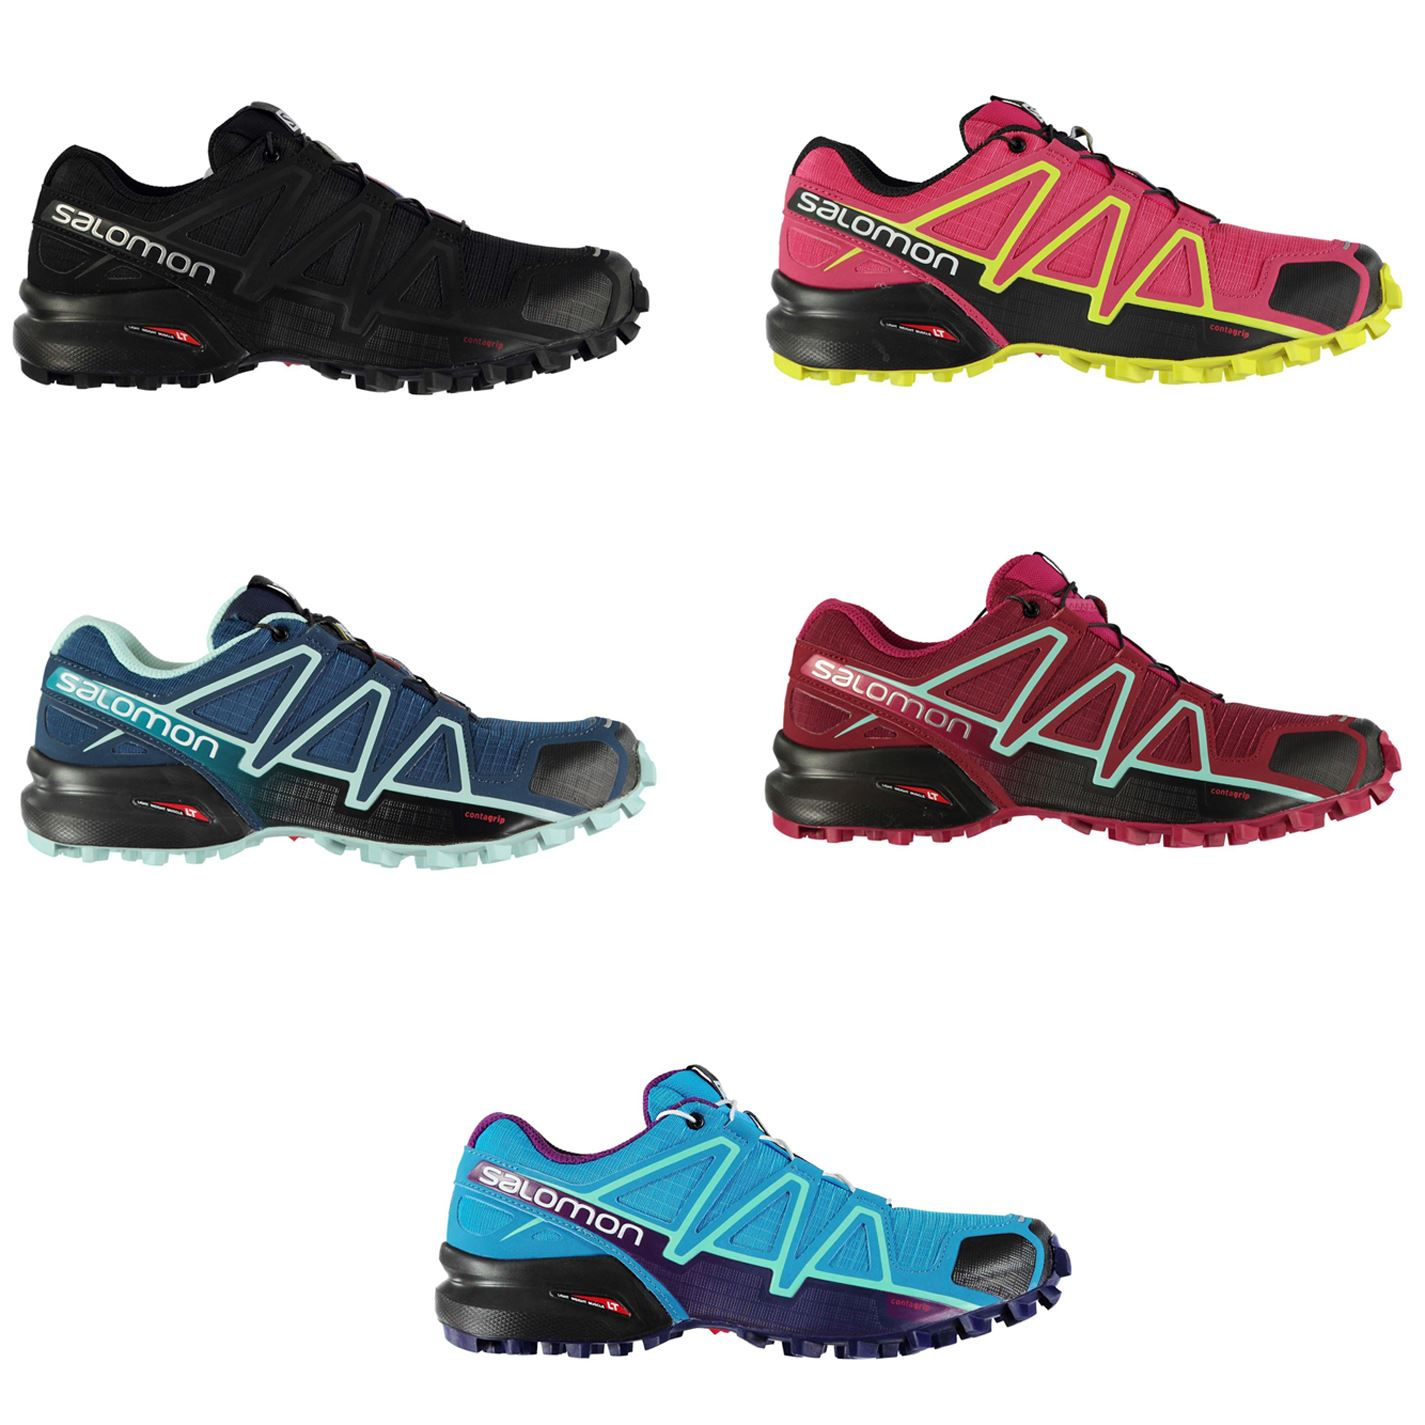 Details about Salomon Speedcross 4 Running Shoes Womens Jogging Trainers Sneakers Fitness